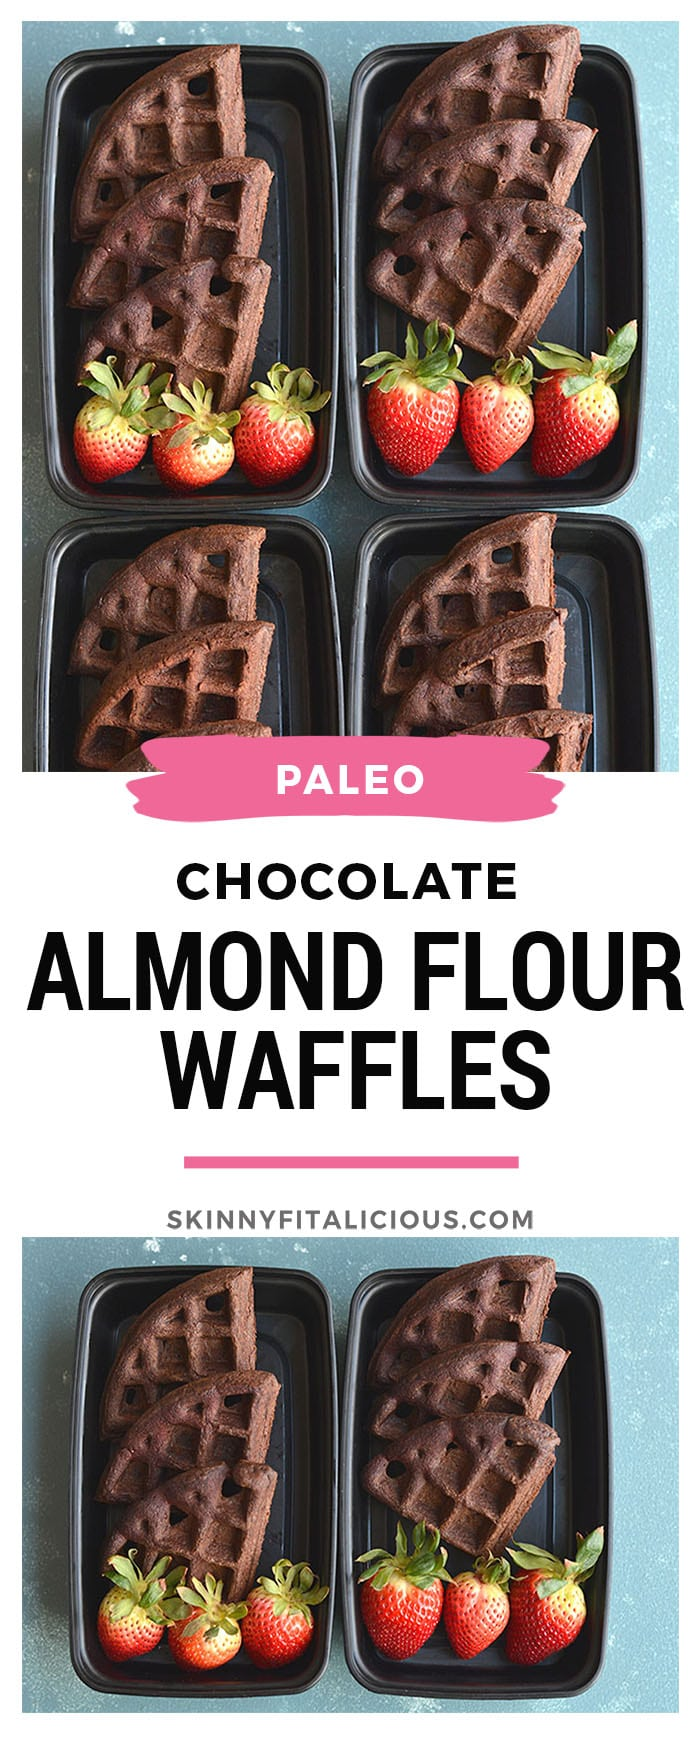 Meal Prep Chocolate Almond Flour Waffles! These chocolate goodies are not only easy to make, but high in protein and healthy fat. You only need a few healthy ingredients to make these light, fluffy, dairy free and delicious waffles. Great for meal prep and freezable too! Paleo + Gluten Free + Low Calorie